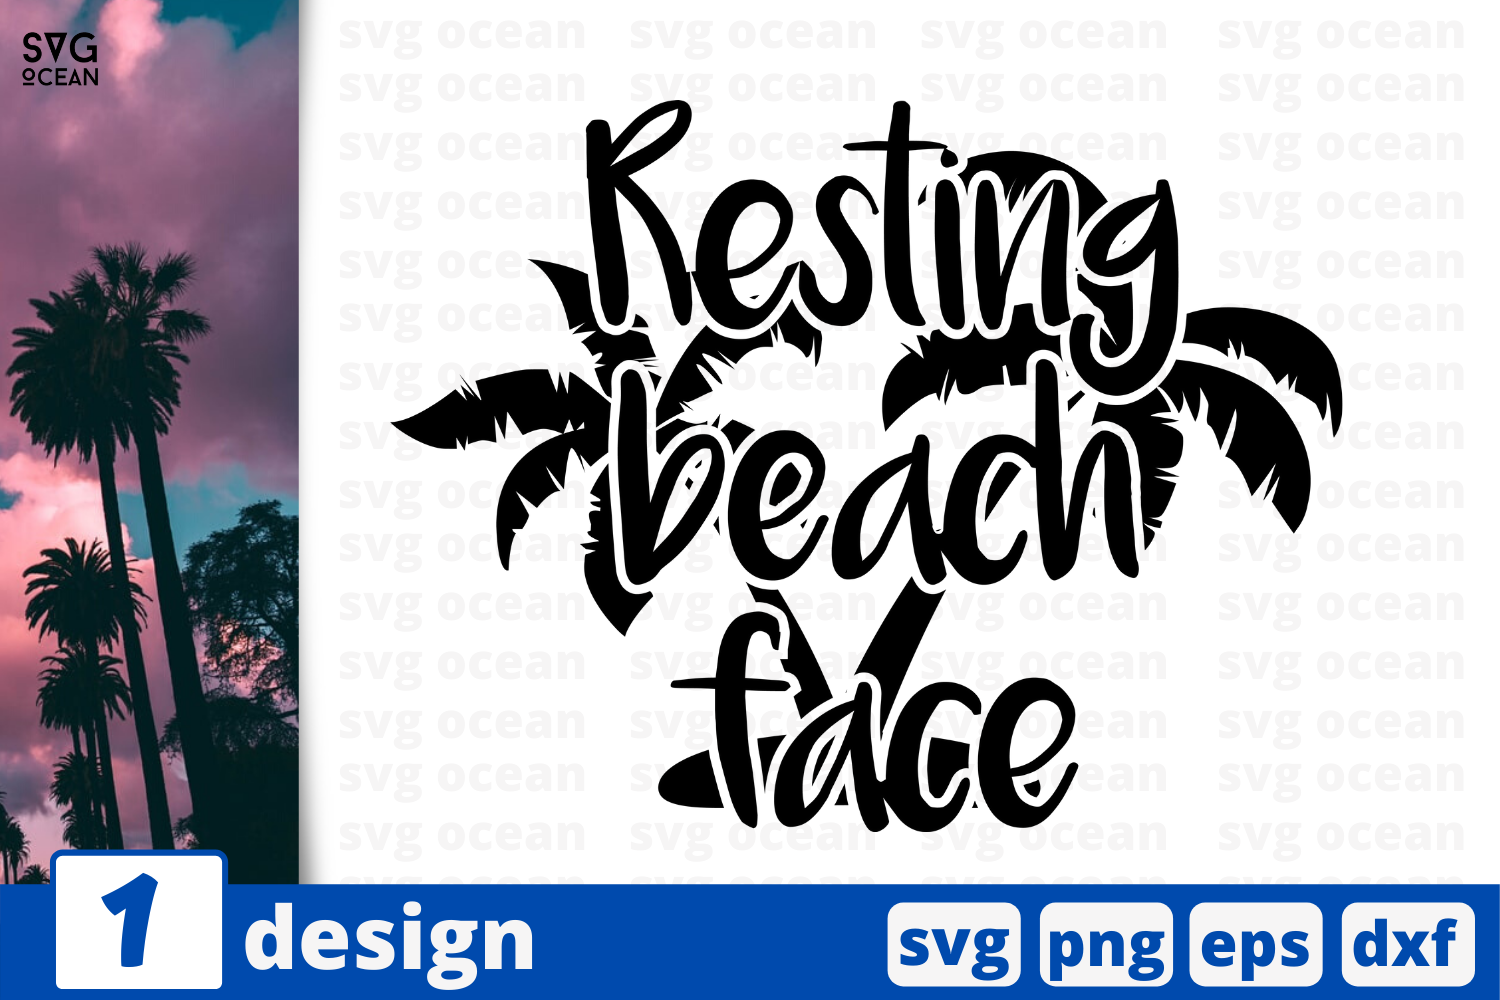 Download Free 1 Resting Beach Face Summer Svg Cricut Graphic By Svgocean for Cricut Explore, Silhouette and other cutting machines.